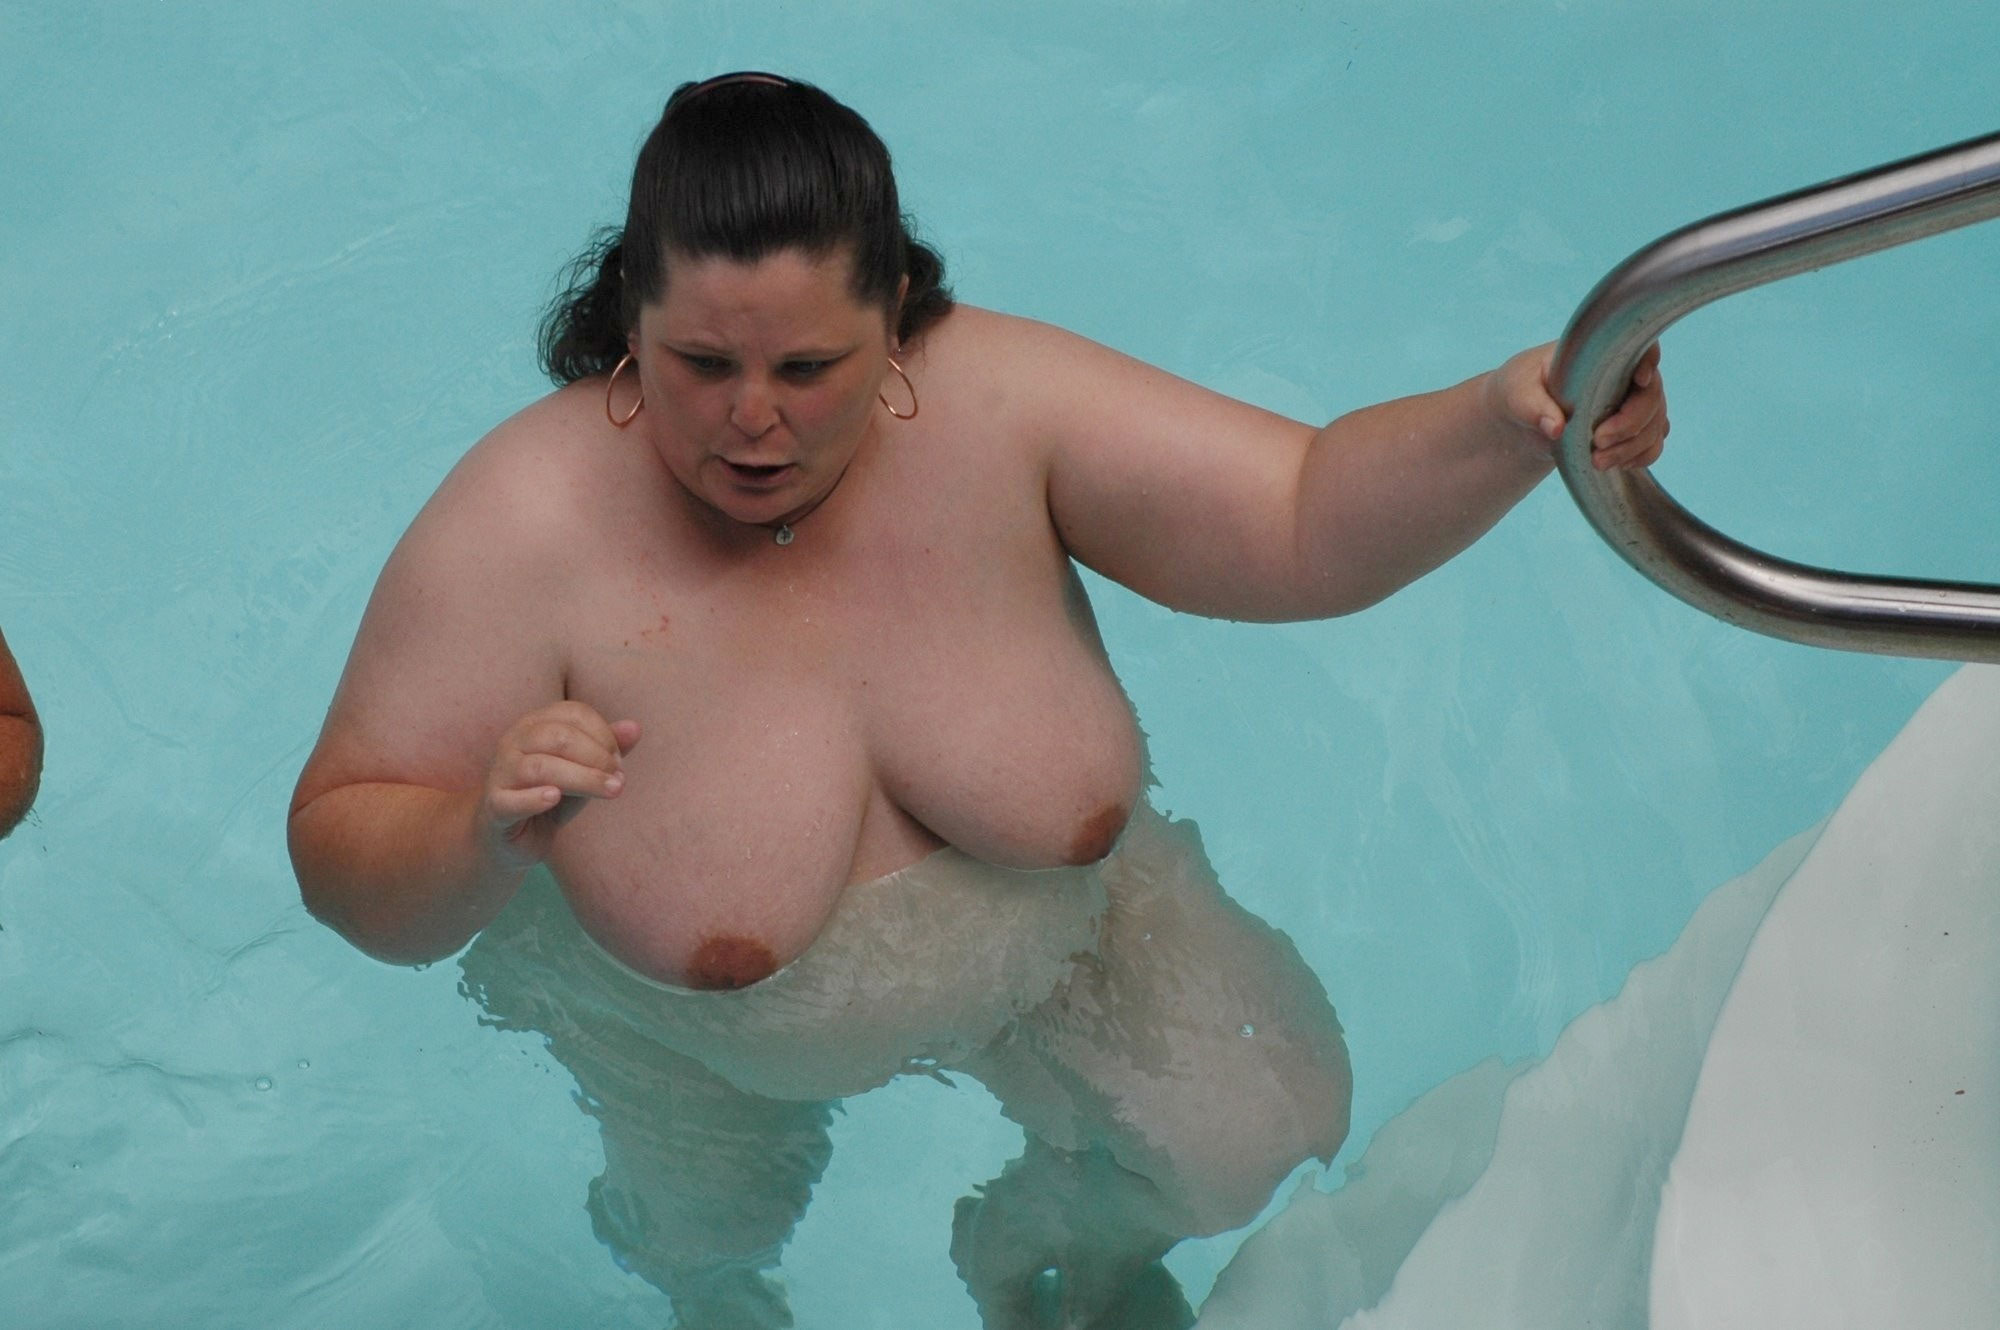 Big breasted mature dames swimming nude in pool - Chubby ...